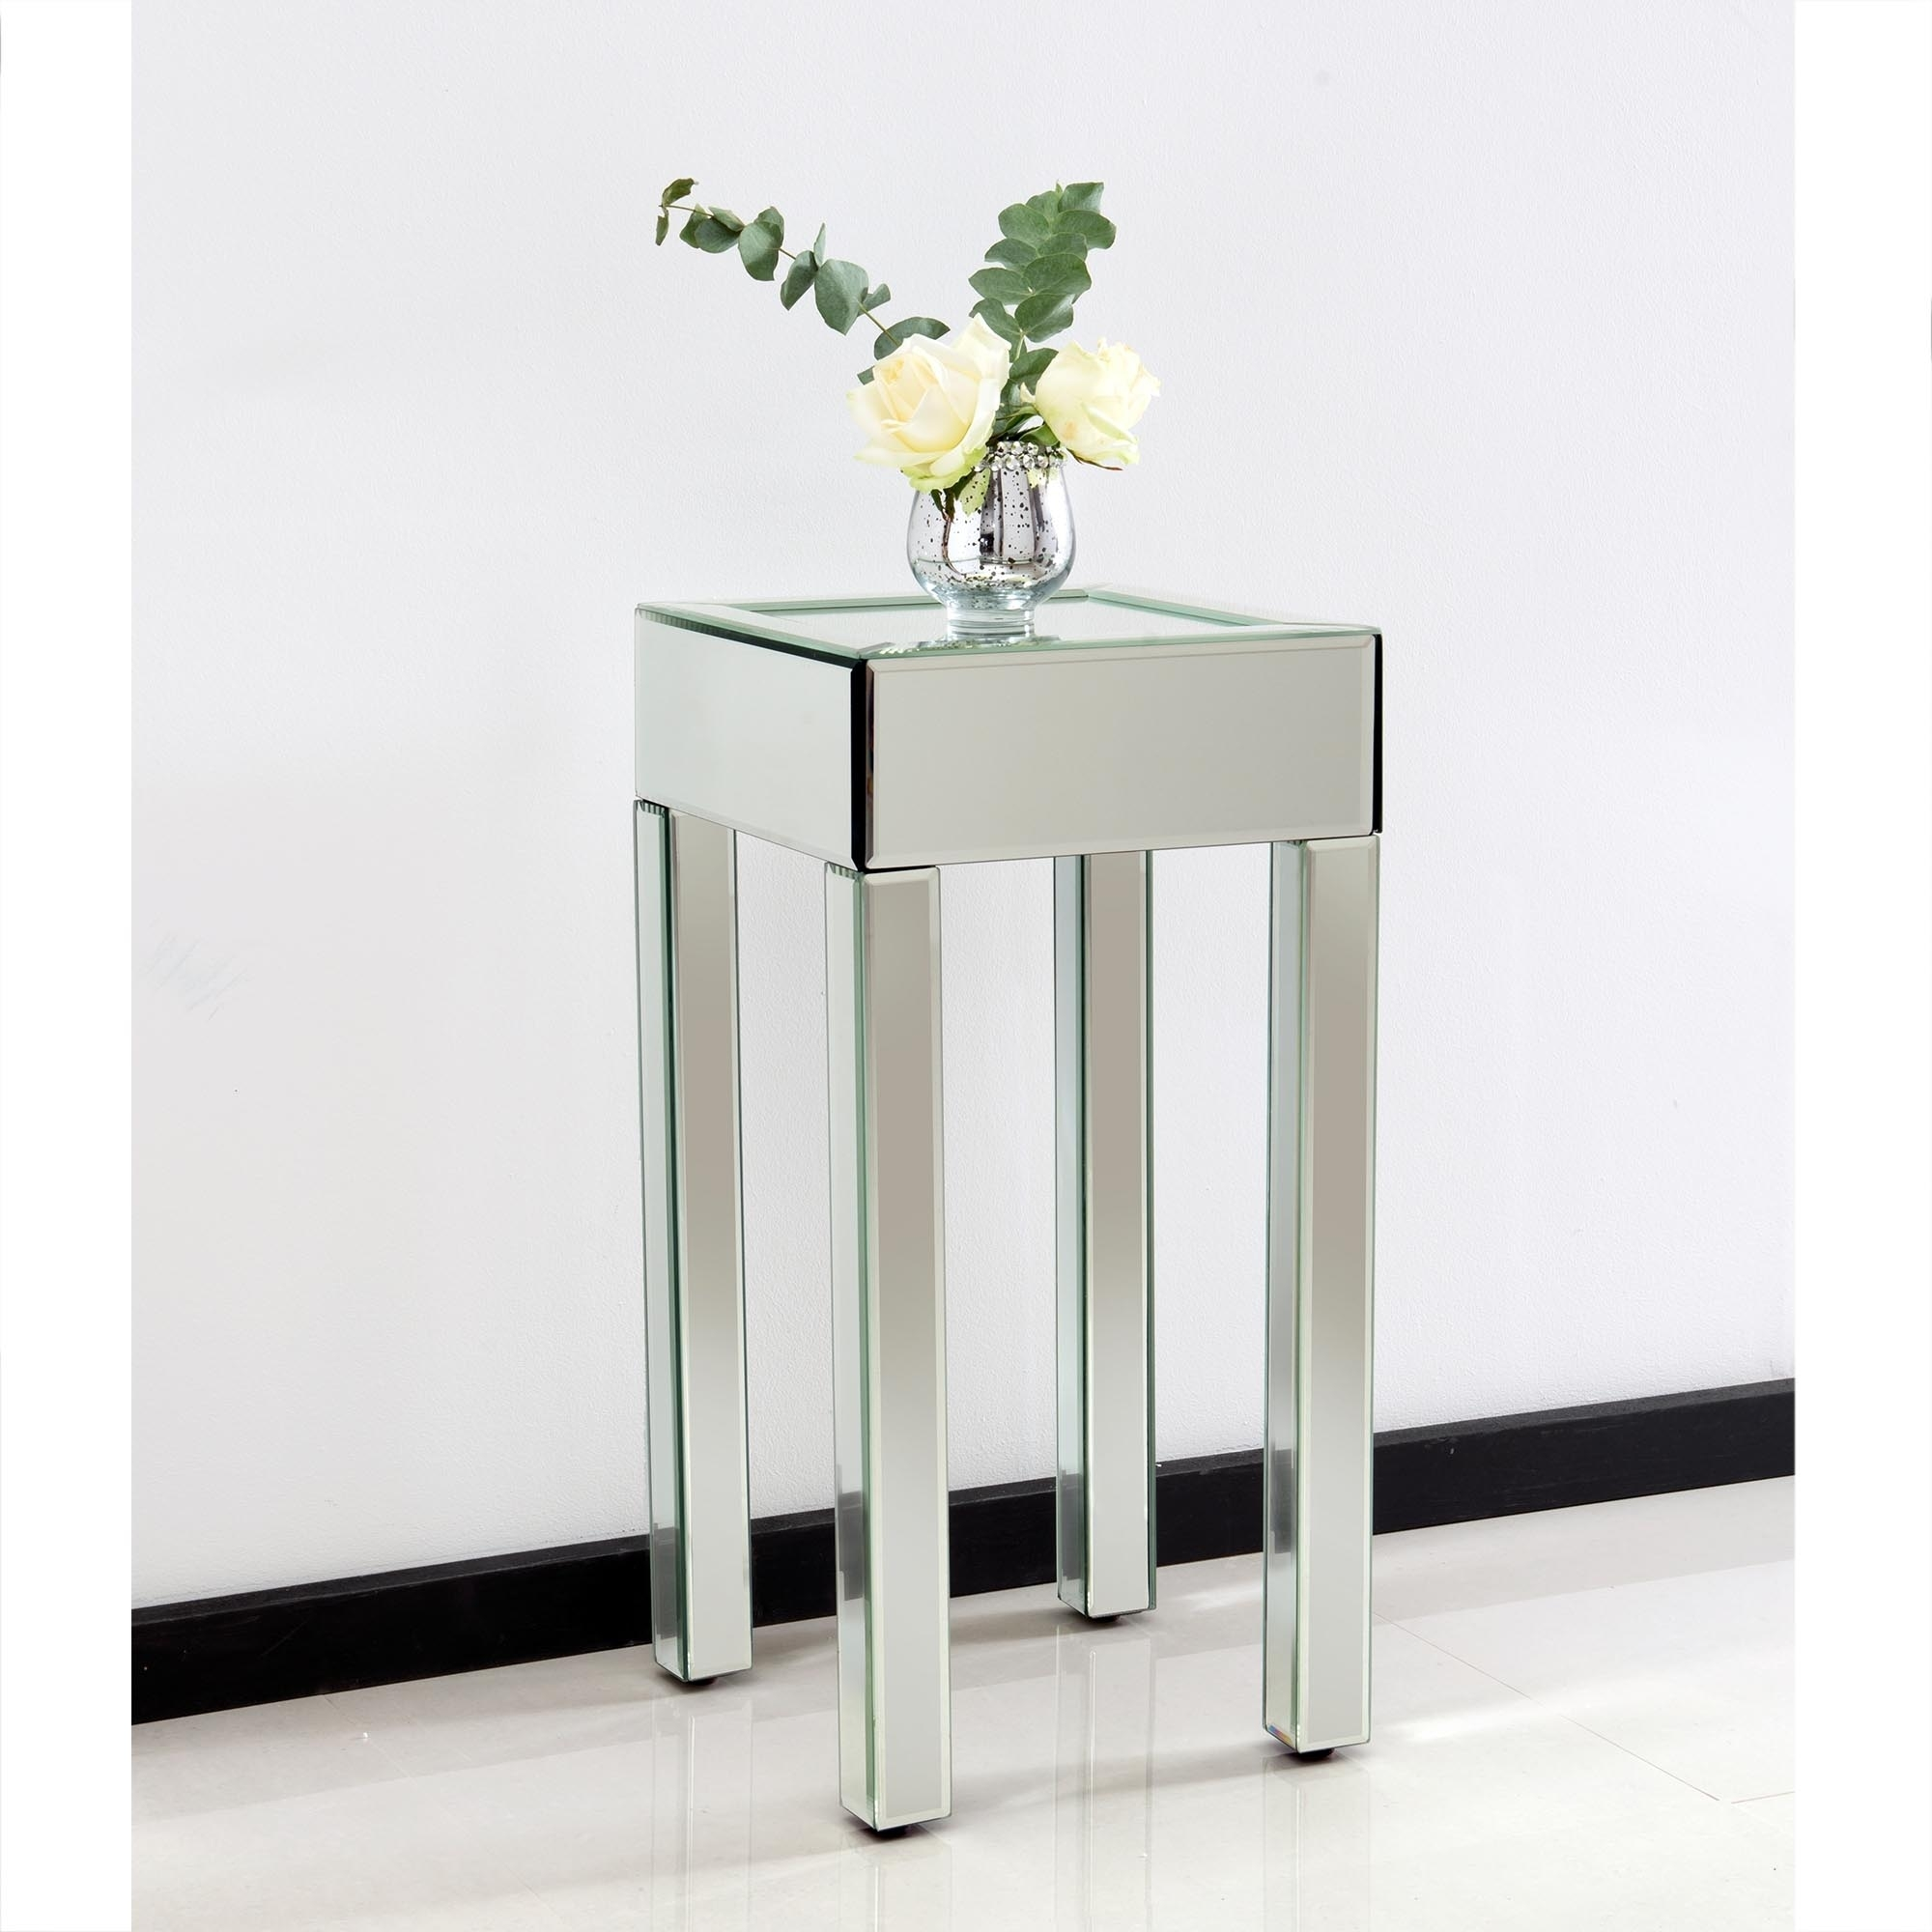 alluring small mirrored table silver mirror bedside console tray ideas runner light tabletop lamps round numbers chairs base side viola gold dining mats glass acrylic vanity